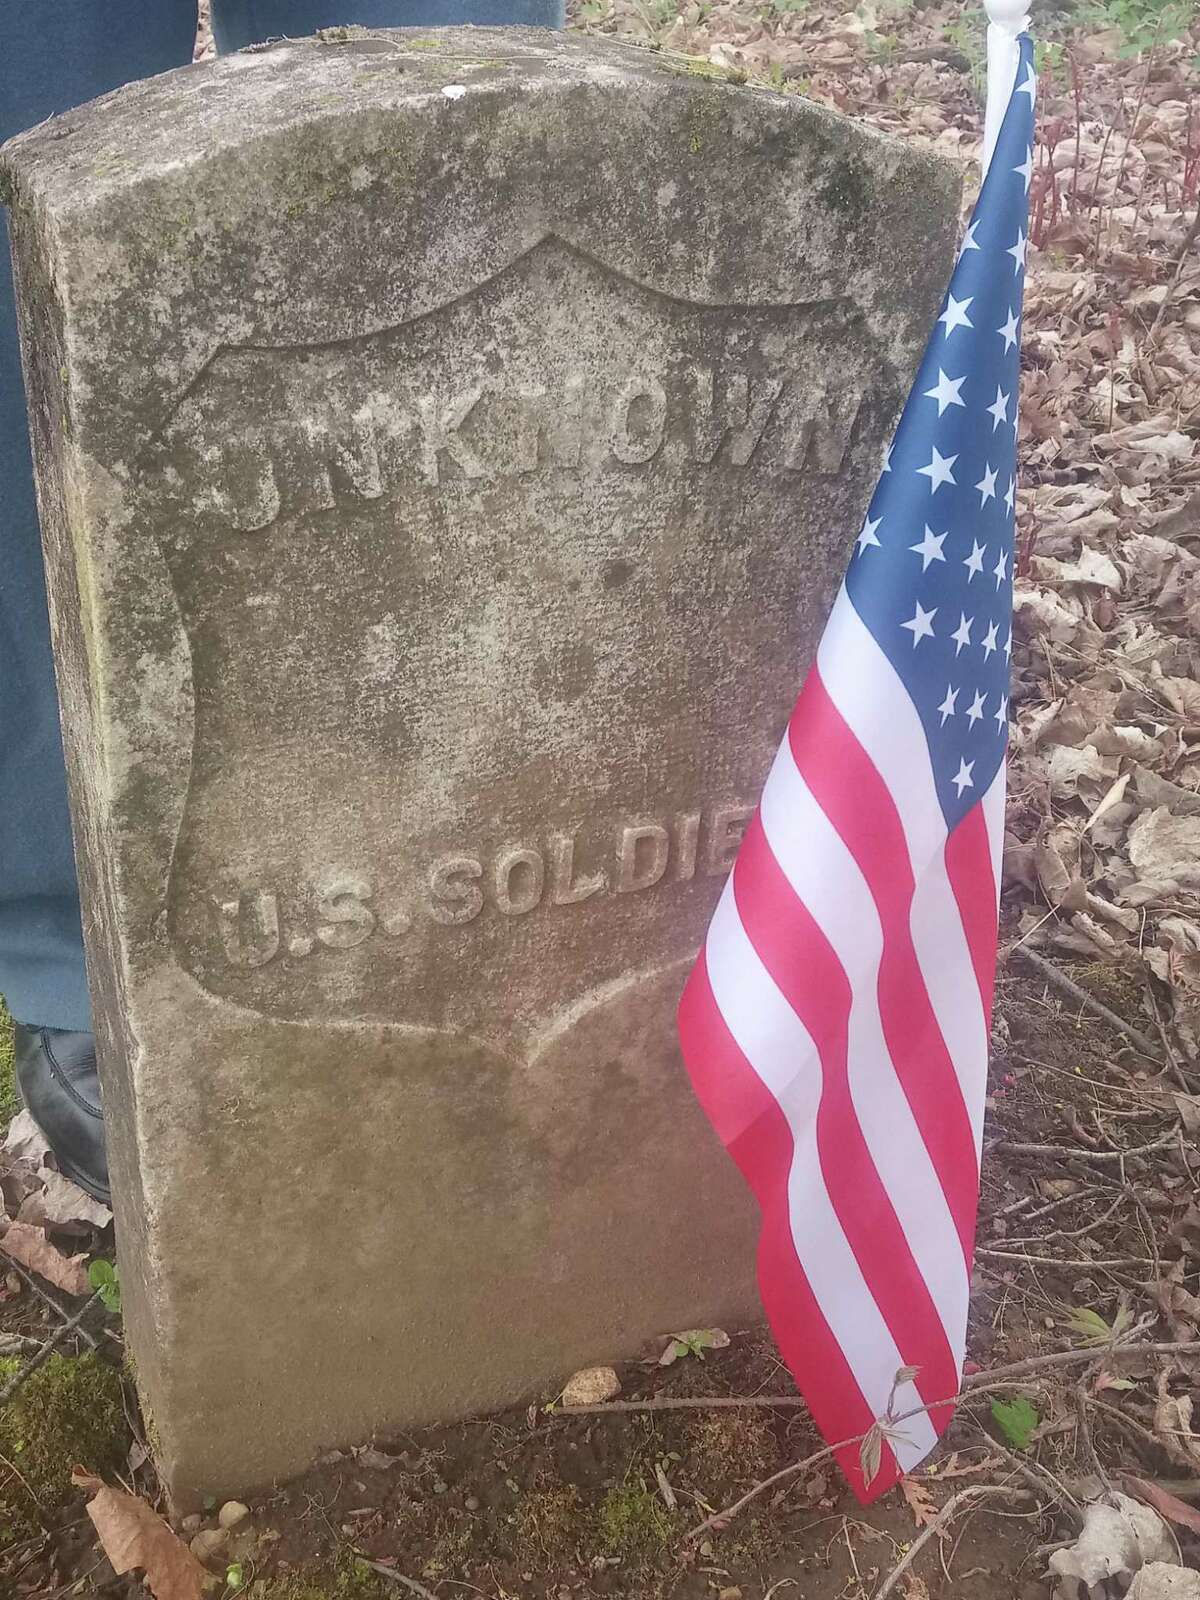 A small group of Civil War reenactors honored U.S. Army Major John Sedgwick Sunday. Sedgwick, who served in the Union Army and was killed in action in 1864 in Spotsylvania, VA, is buried at Old Cornwall Hollow Cemetery. Above, an unknown soldier's grave at the cemetery.